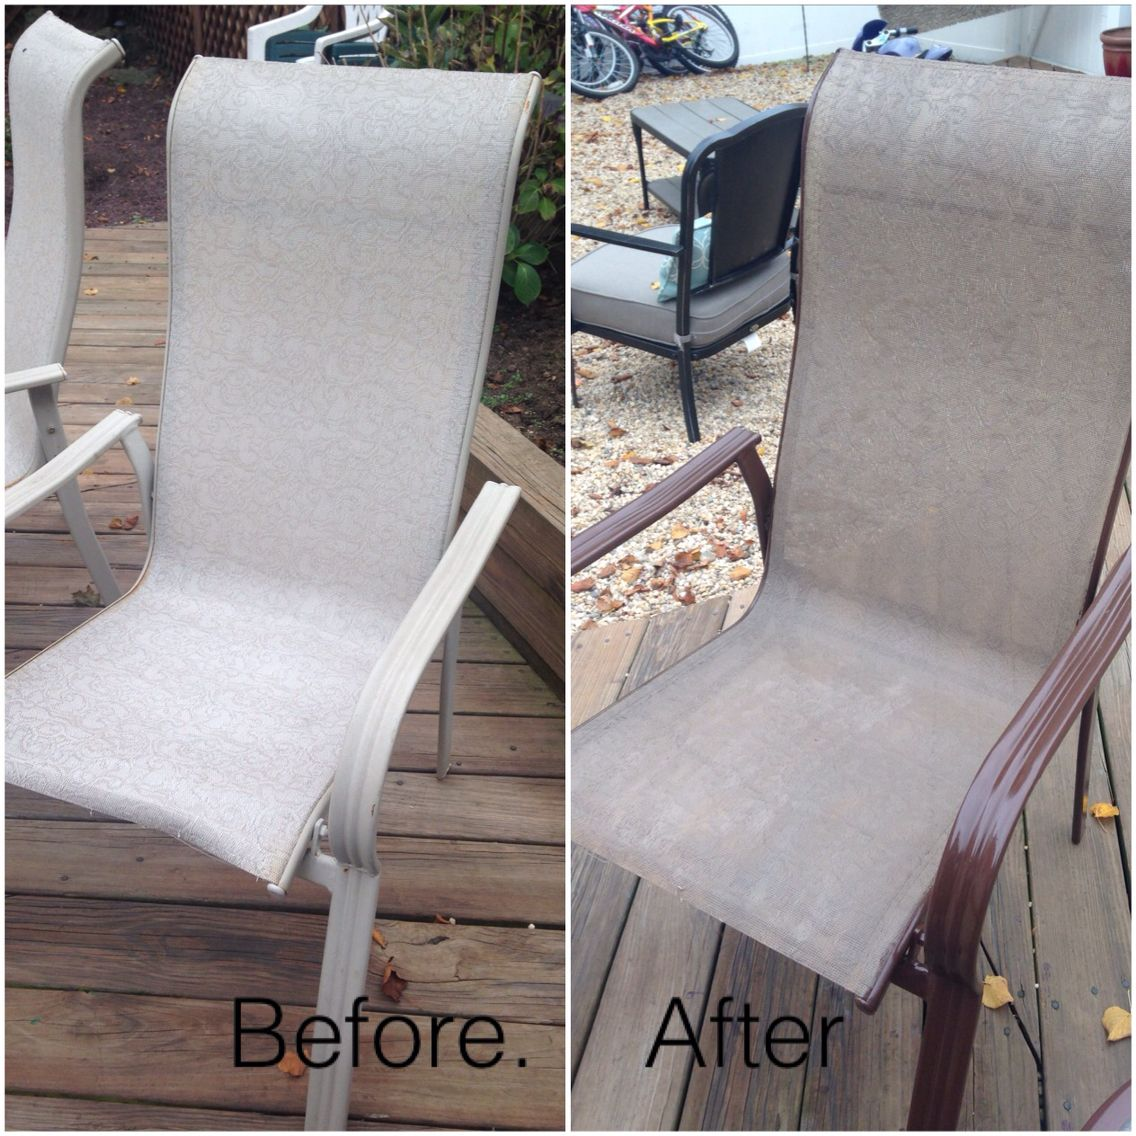 Old Patio Furniture No Problem Spray Paint Fabric Rustoleum Paint On Metal Painting Patio Furniture Patio Furniture Makeover Patio Furniture Fabric